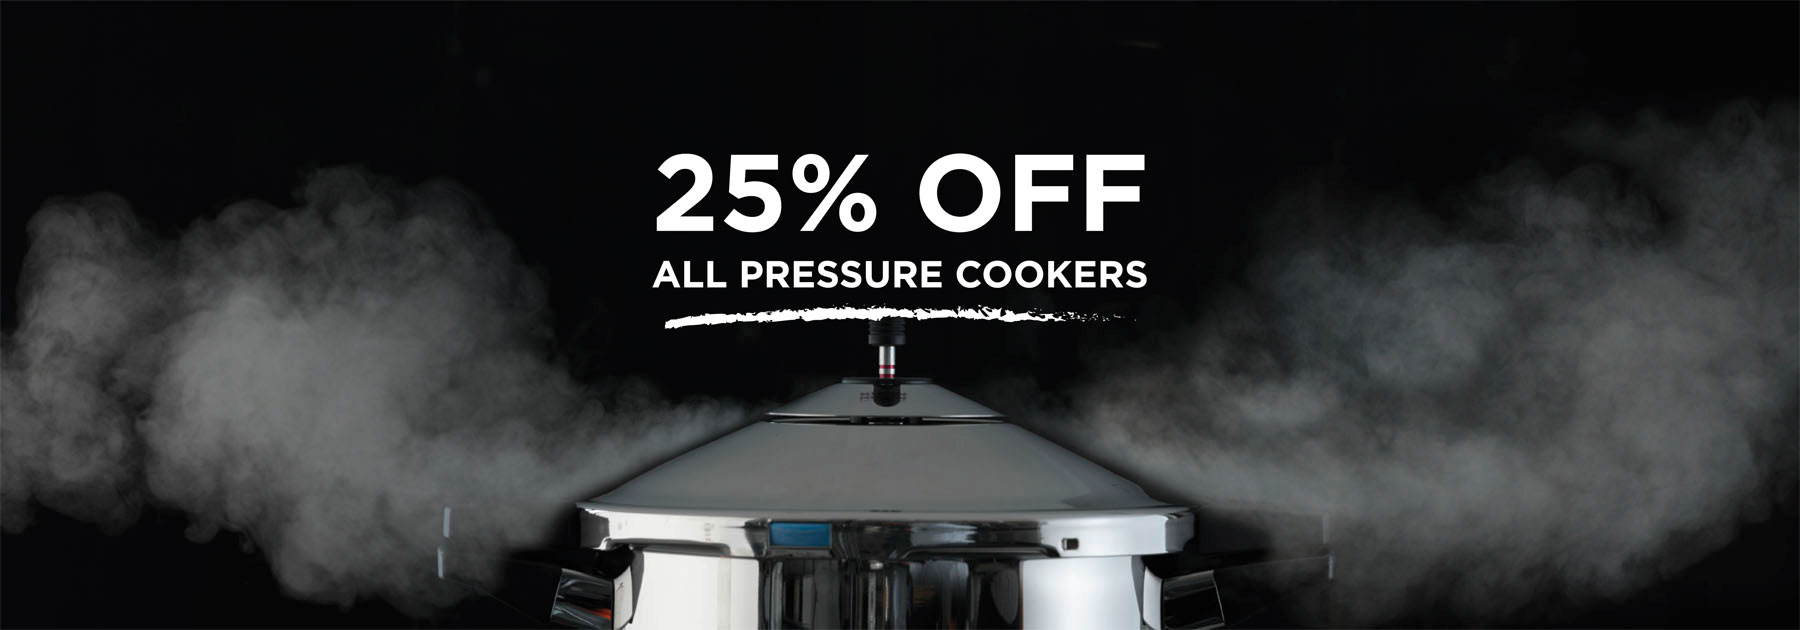 Duromatic, pressure, cookers, sale, offer, discount